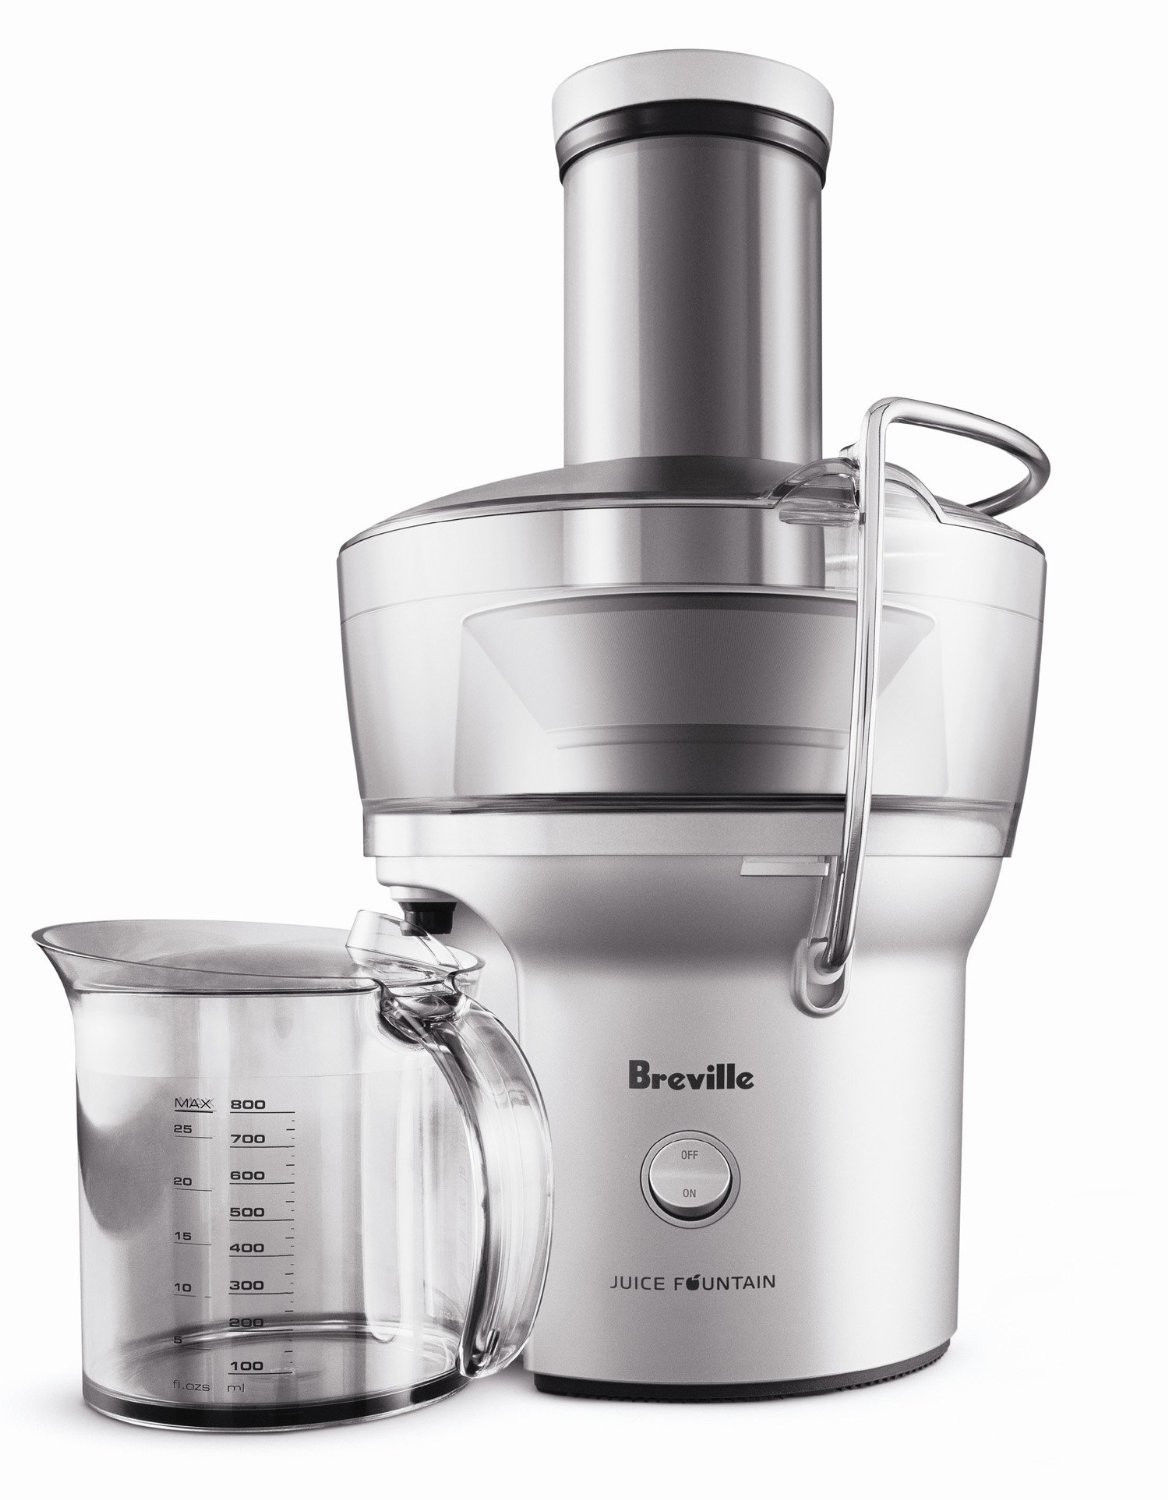 Juicer Breville BJE200XL Compact Juice Fountain 700-Watt Juice Extractor New